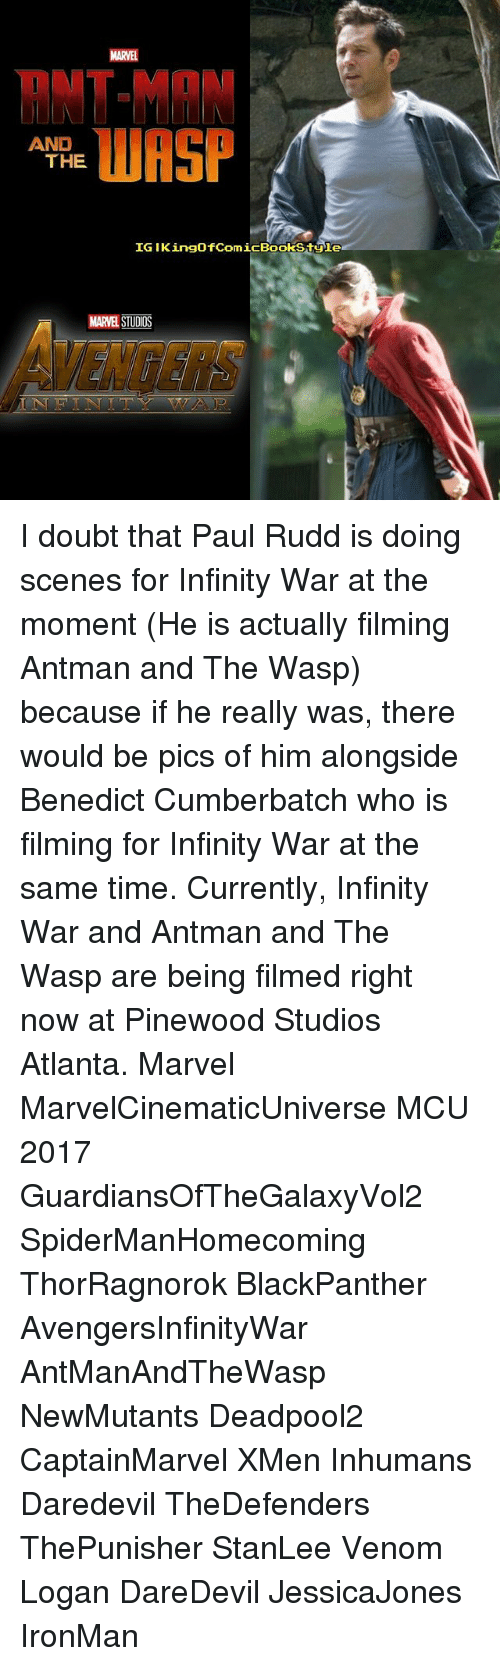 the wasp: RNT-MAN  WASP  AND  THE  IG IKingofComicBookStgle  MARVEL STUDIOS I doubt that Paul Rudd is doing scenes for Infinity War at the moment (He is actually filming Antman and The Wasp) because if he really was, there would be pics of him alongside Benedict Cumberbatch who is filming for Infinity War at the same time. Currently, Infinity War and Antman and The Wasp are being filmed right now at Pinewood Studios Atlanta. Marvel MarvelCinematicUniverse MCU 2017 GuardiansOfTheGalaxyVol2 SpiderManHomecoming ThorRagnorok BlackPanther AvengersInfinityWar AntManAndTheWasp NewMutants Deadpool2 CaptainMarvel XMen Inhumans Daredevil TheDefenders ThePunisher StanLee Venom Logan DareDevil JessicaJones IronMan